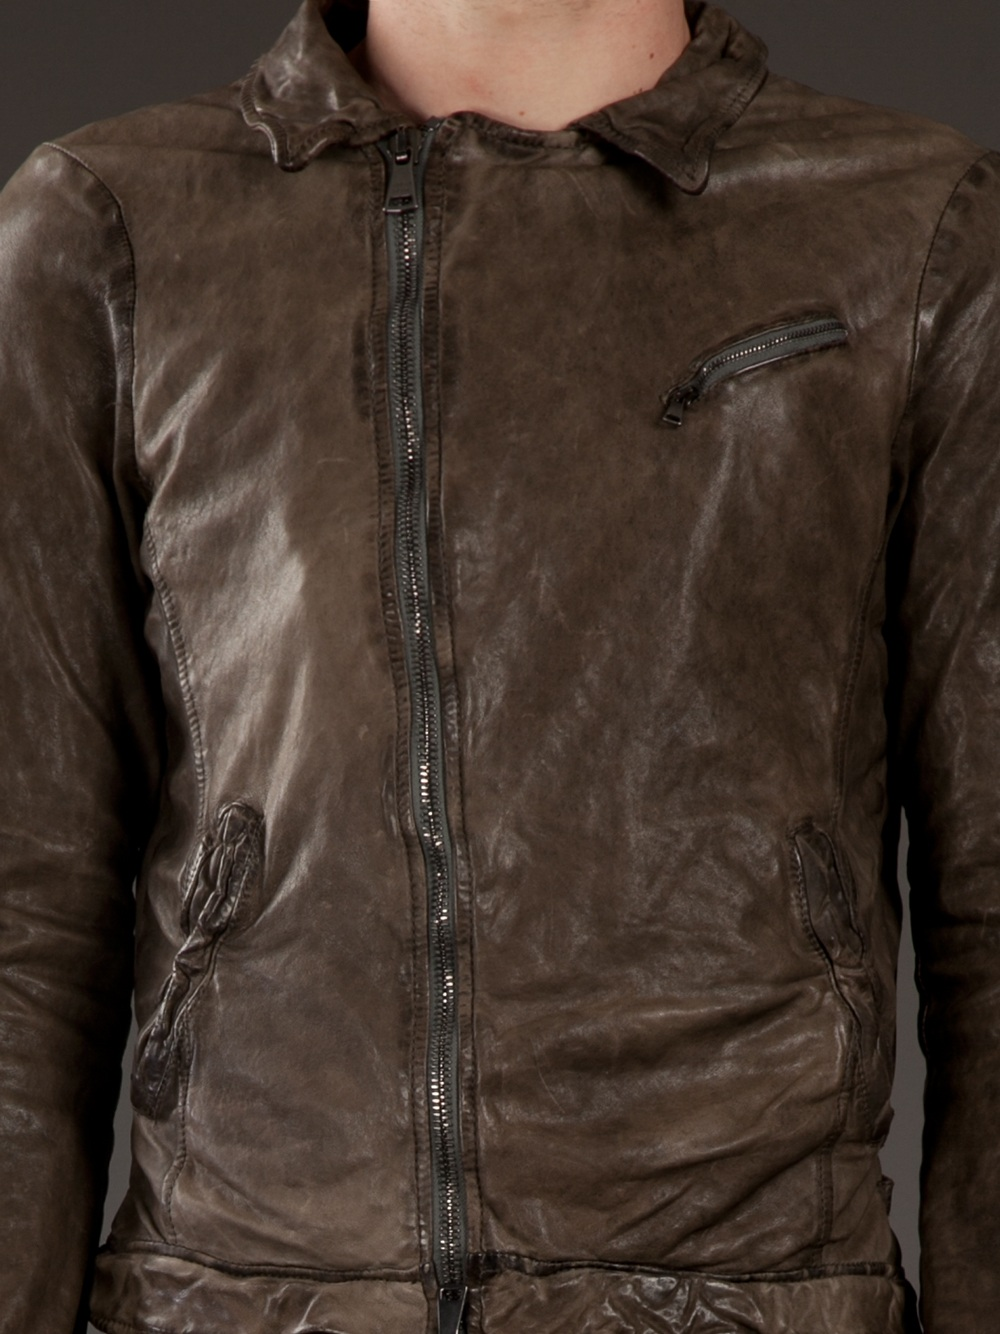 Giorgio Brato Destressed Leather Jacket In Brown For Men